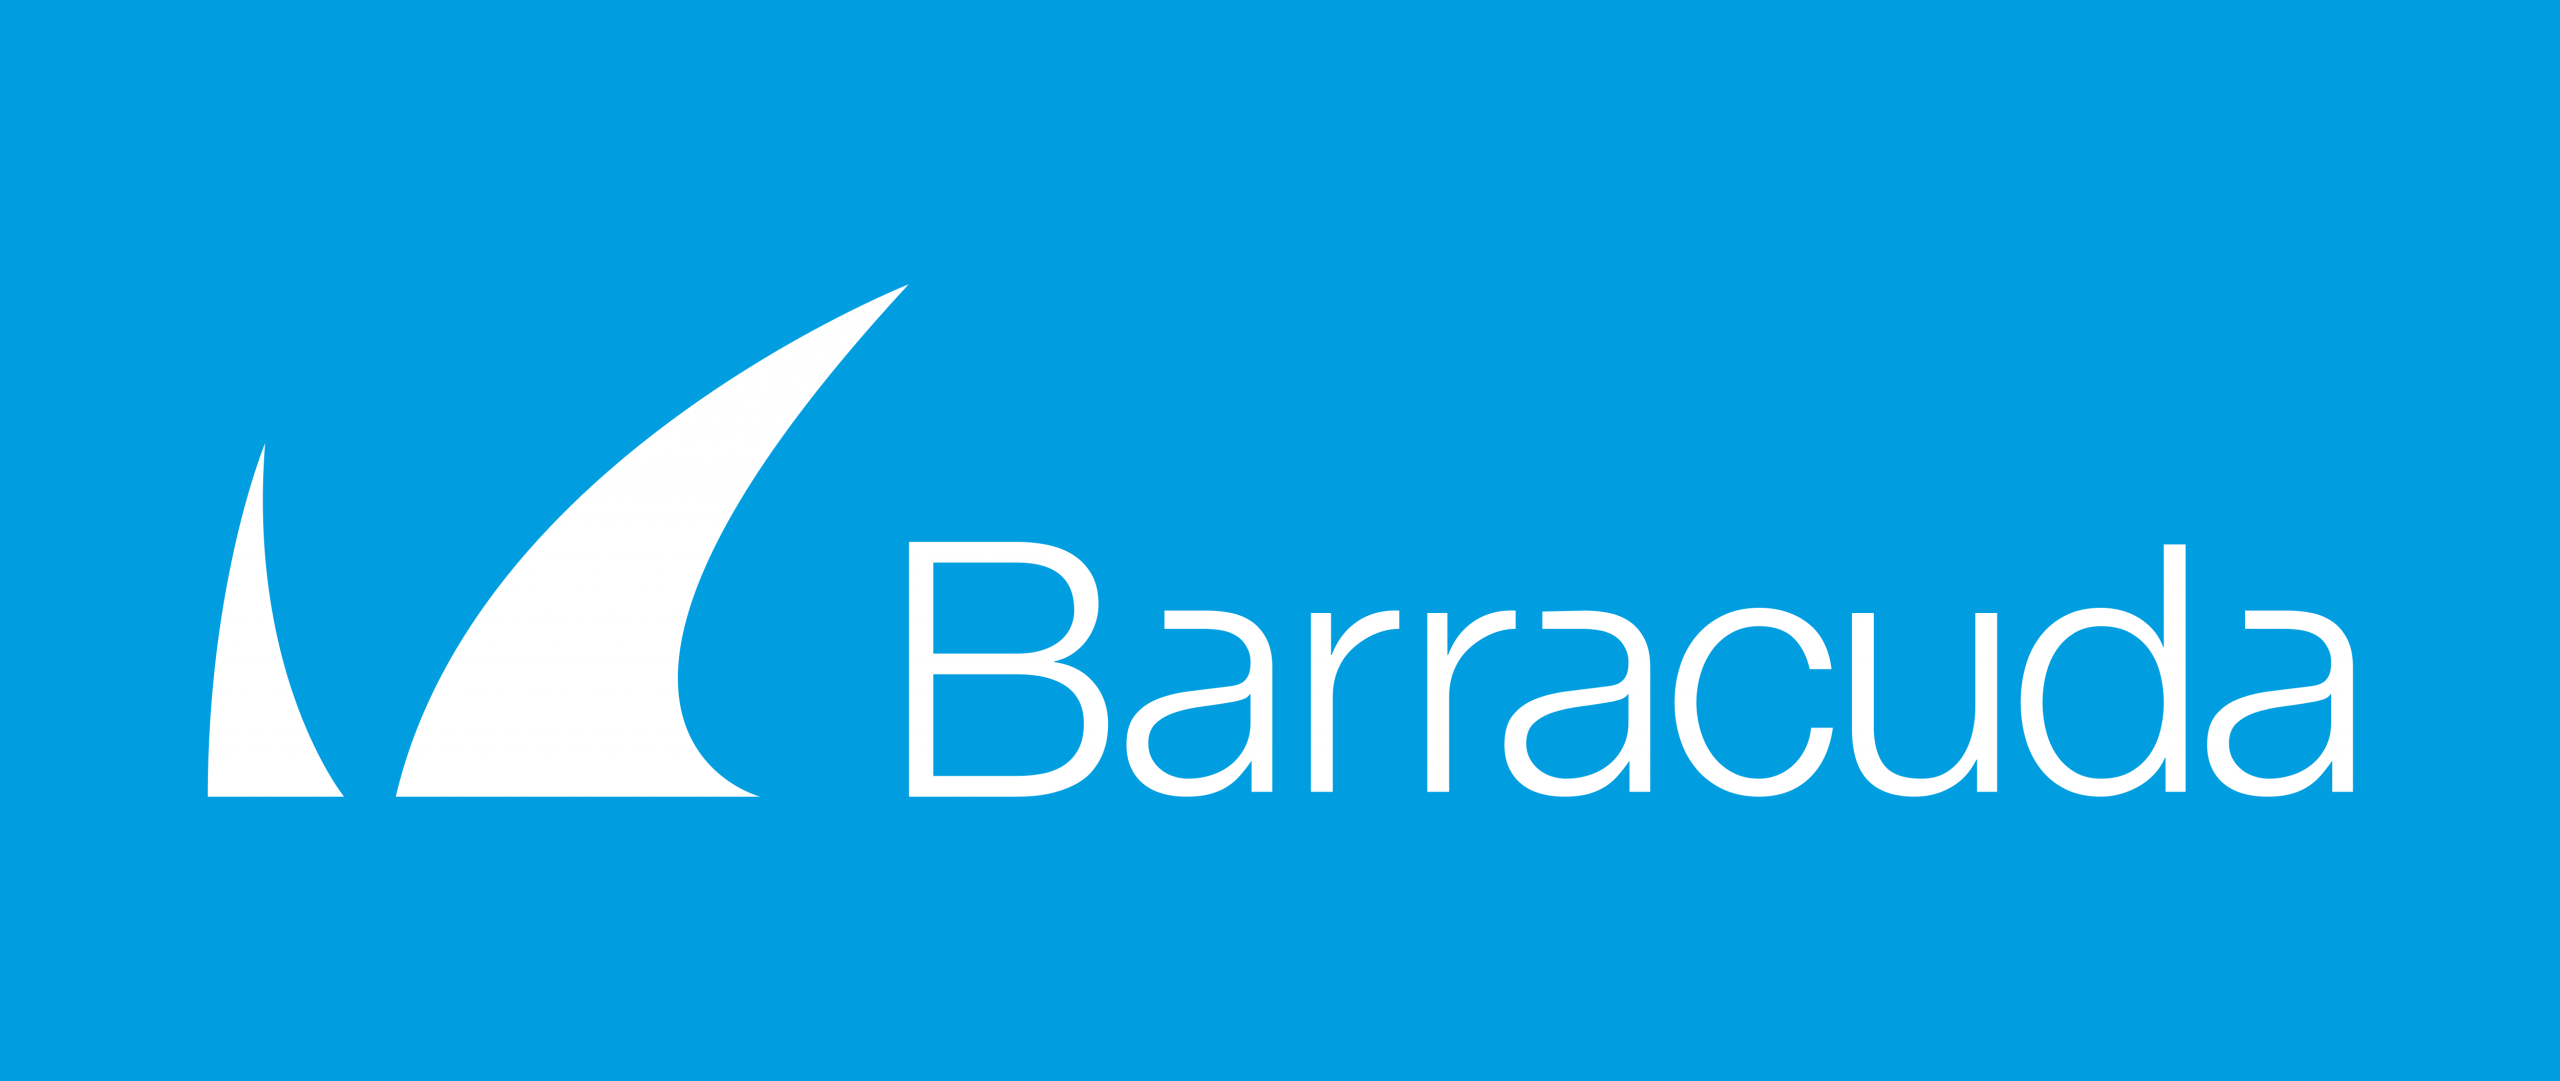 barracuda partner van braincap